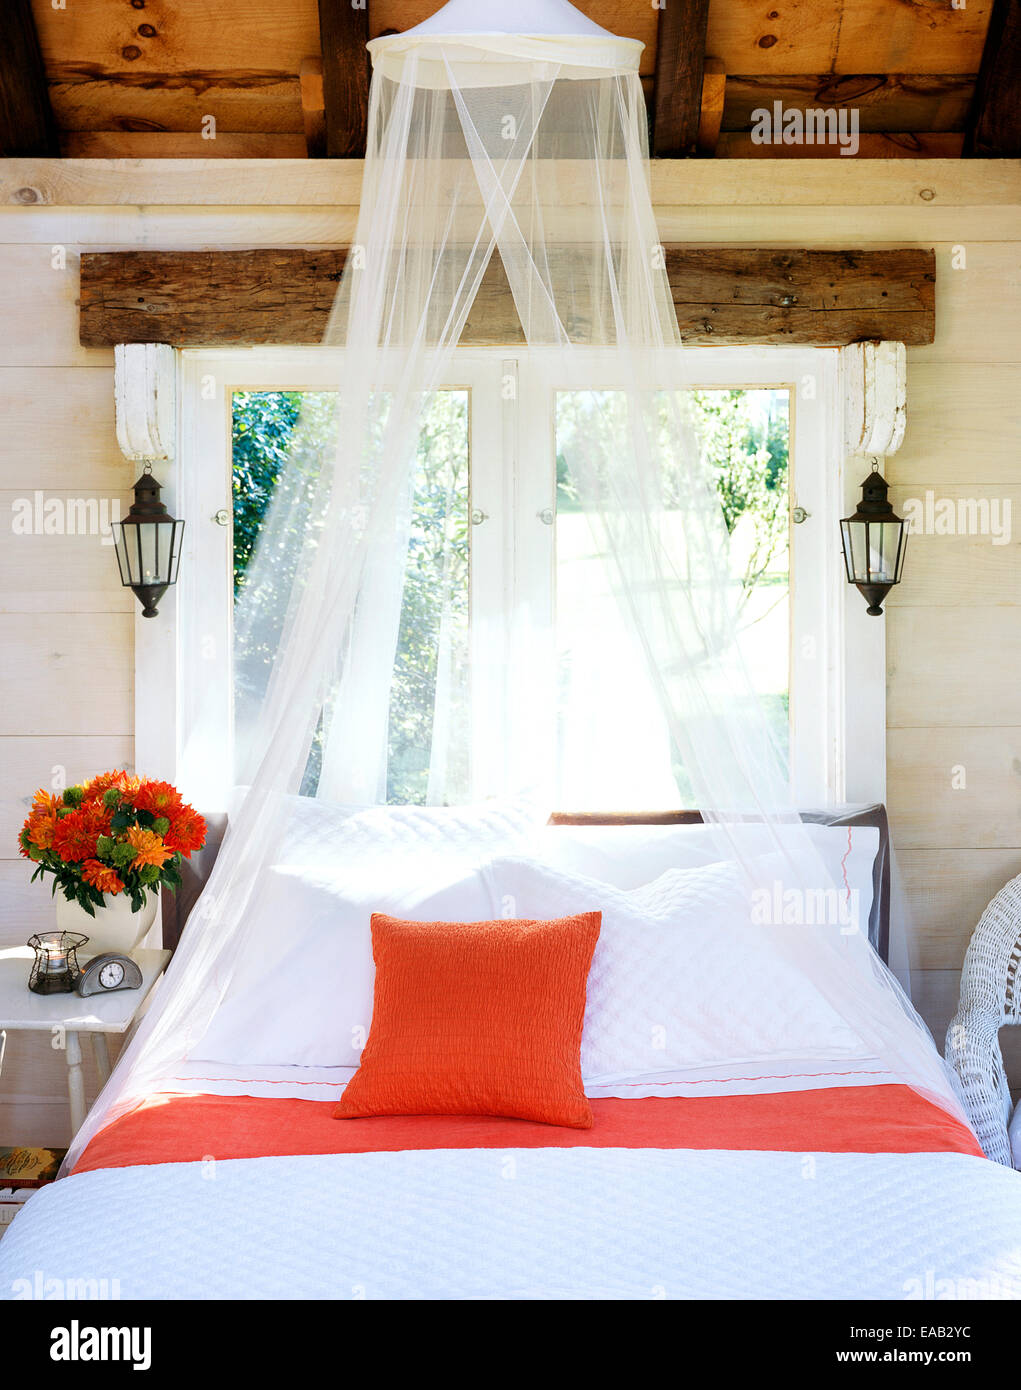 well made bed with bug netting - Stock Image